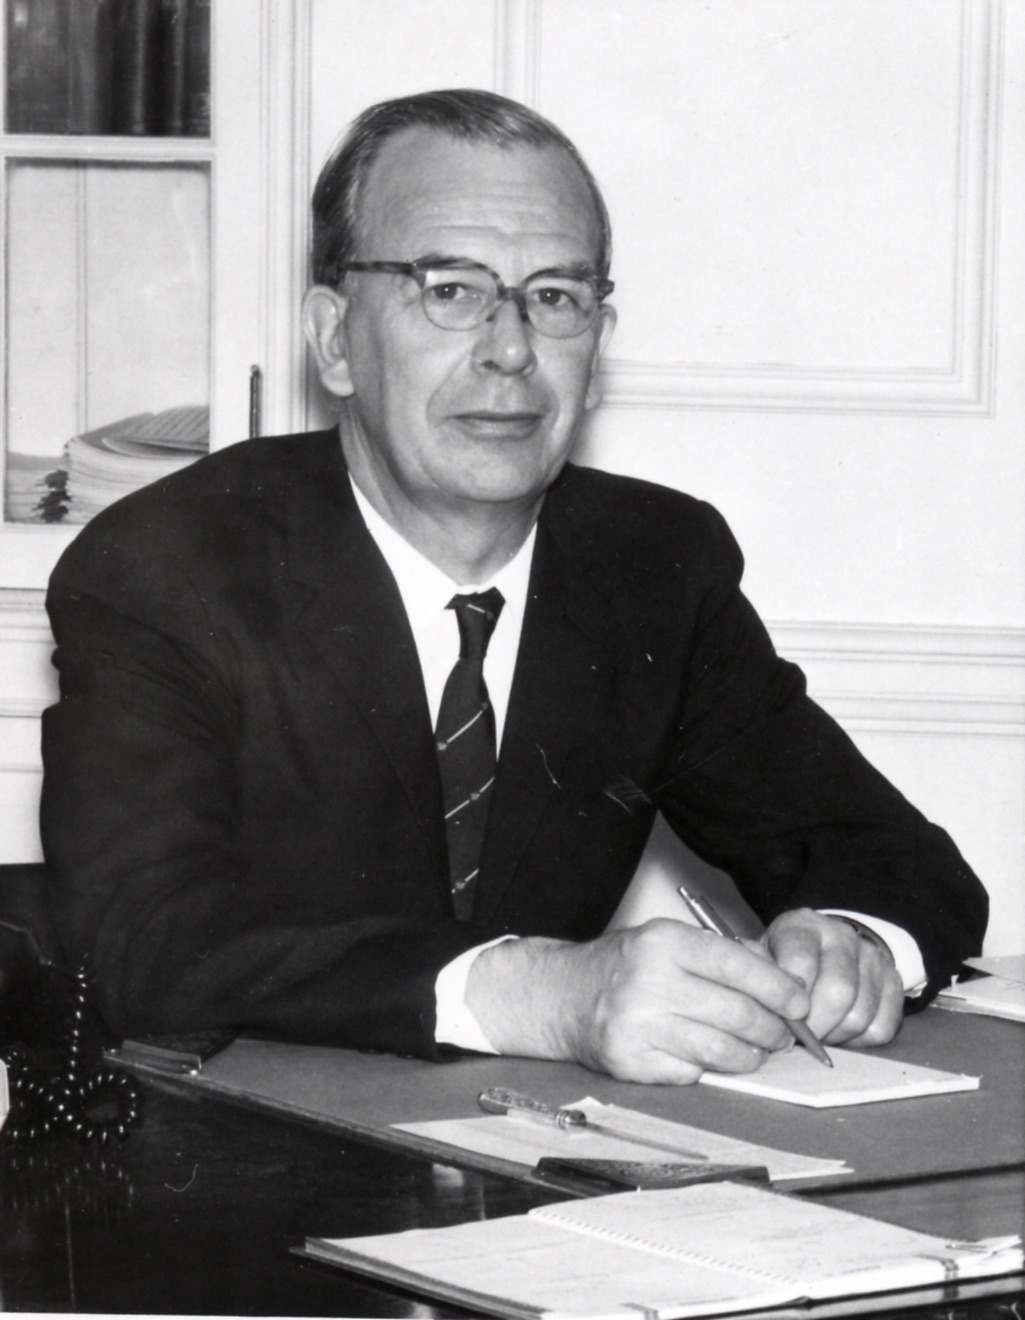 Dr. Andrew James Rhodes at his desk, c. 1950s.